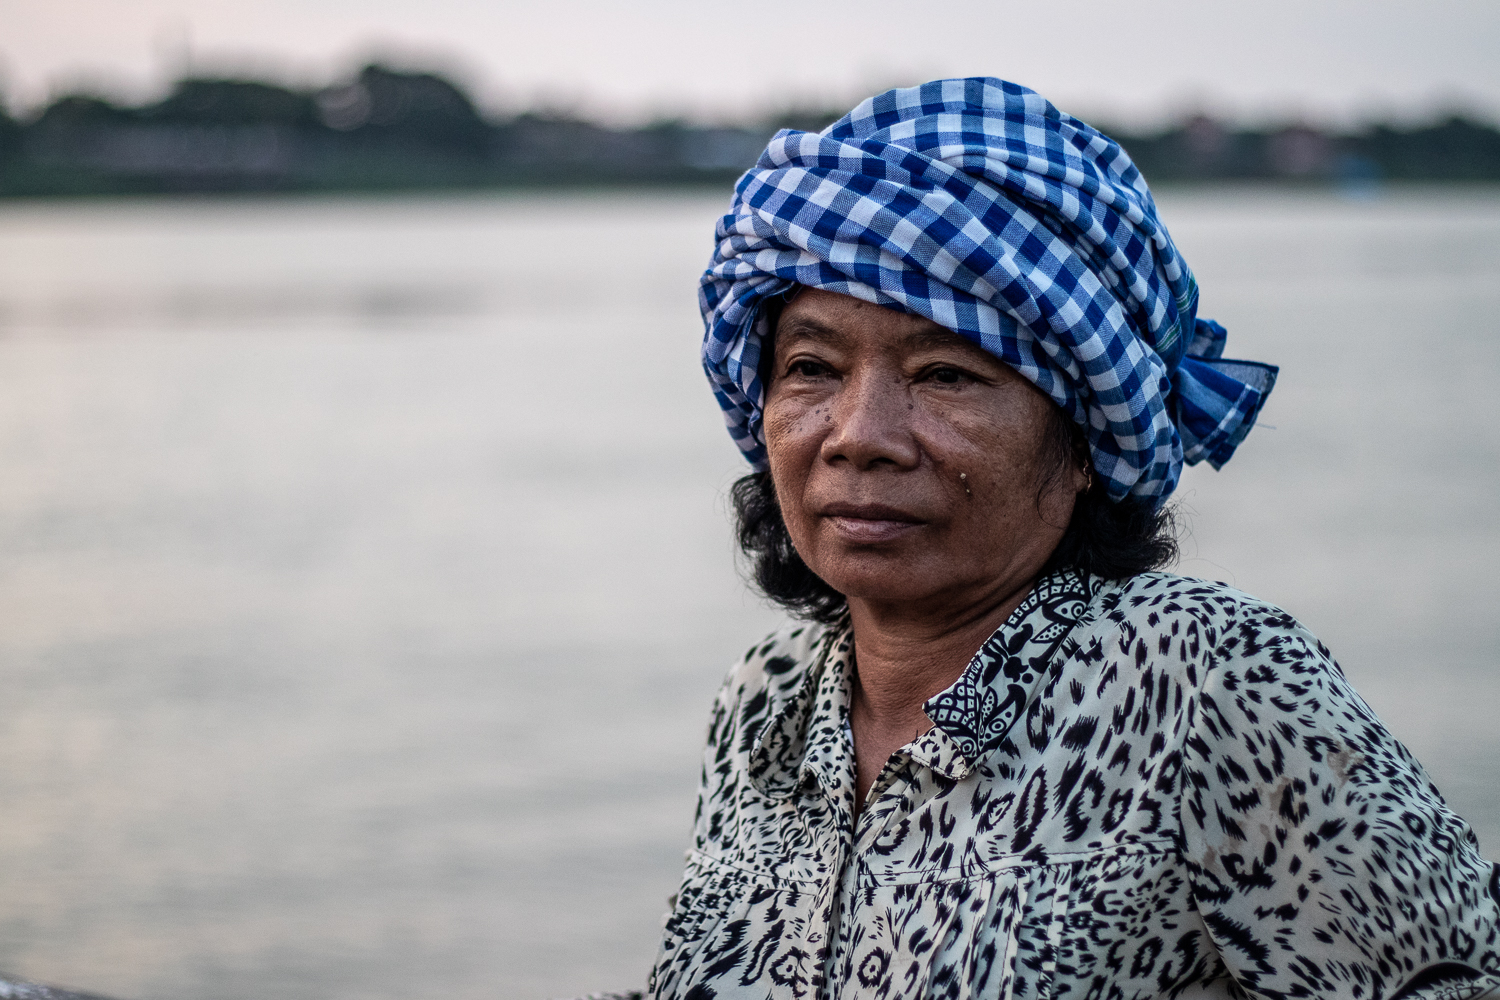 A photo of a Cambodian lady wearing a krama captured in Phnom Penh.